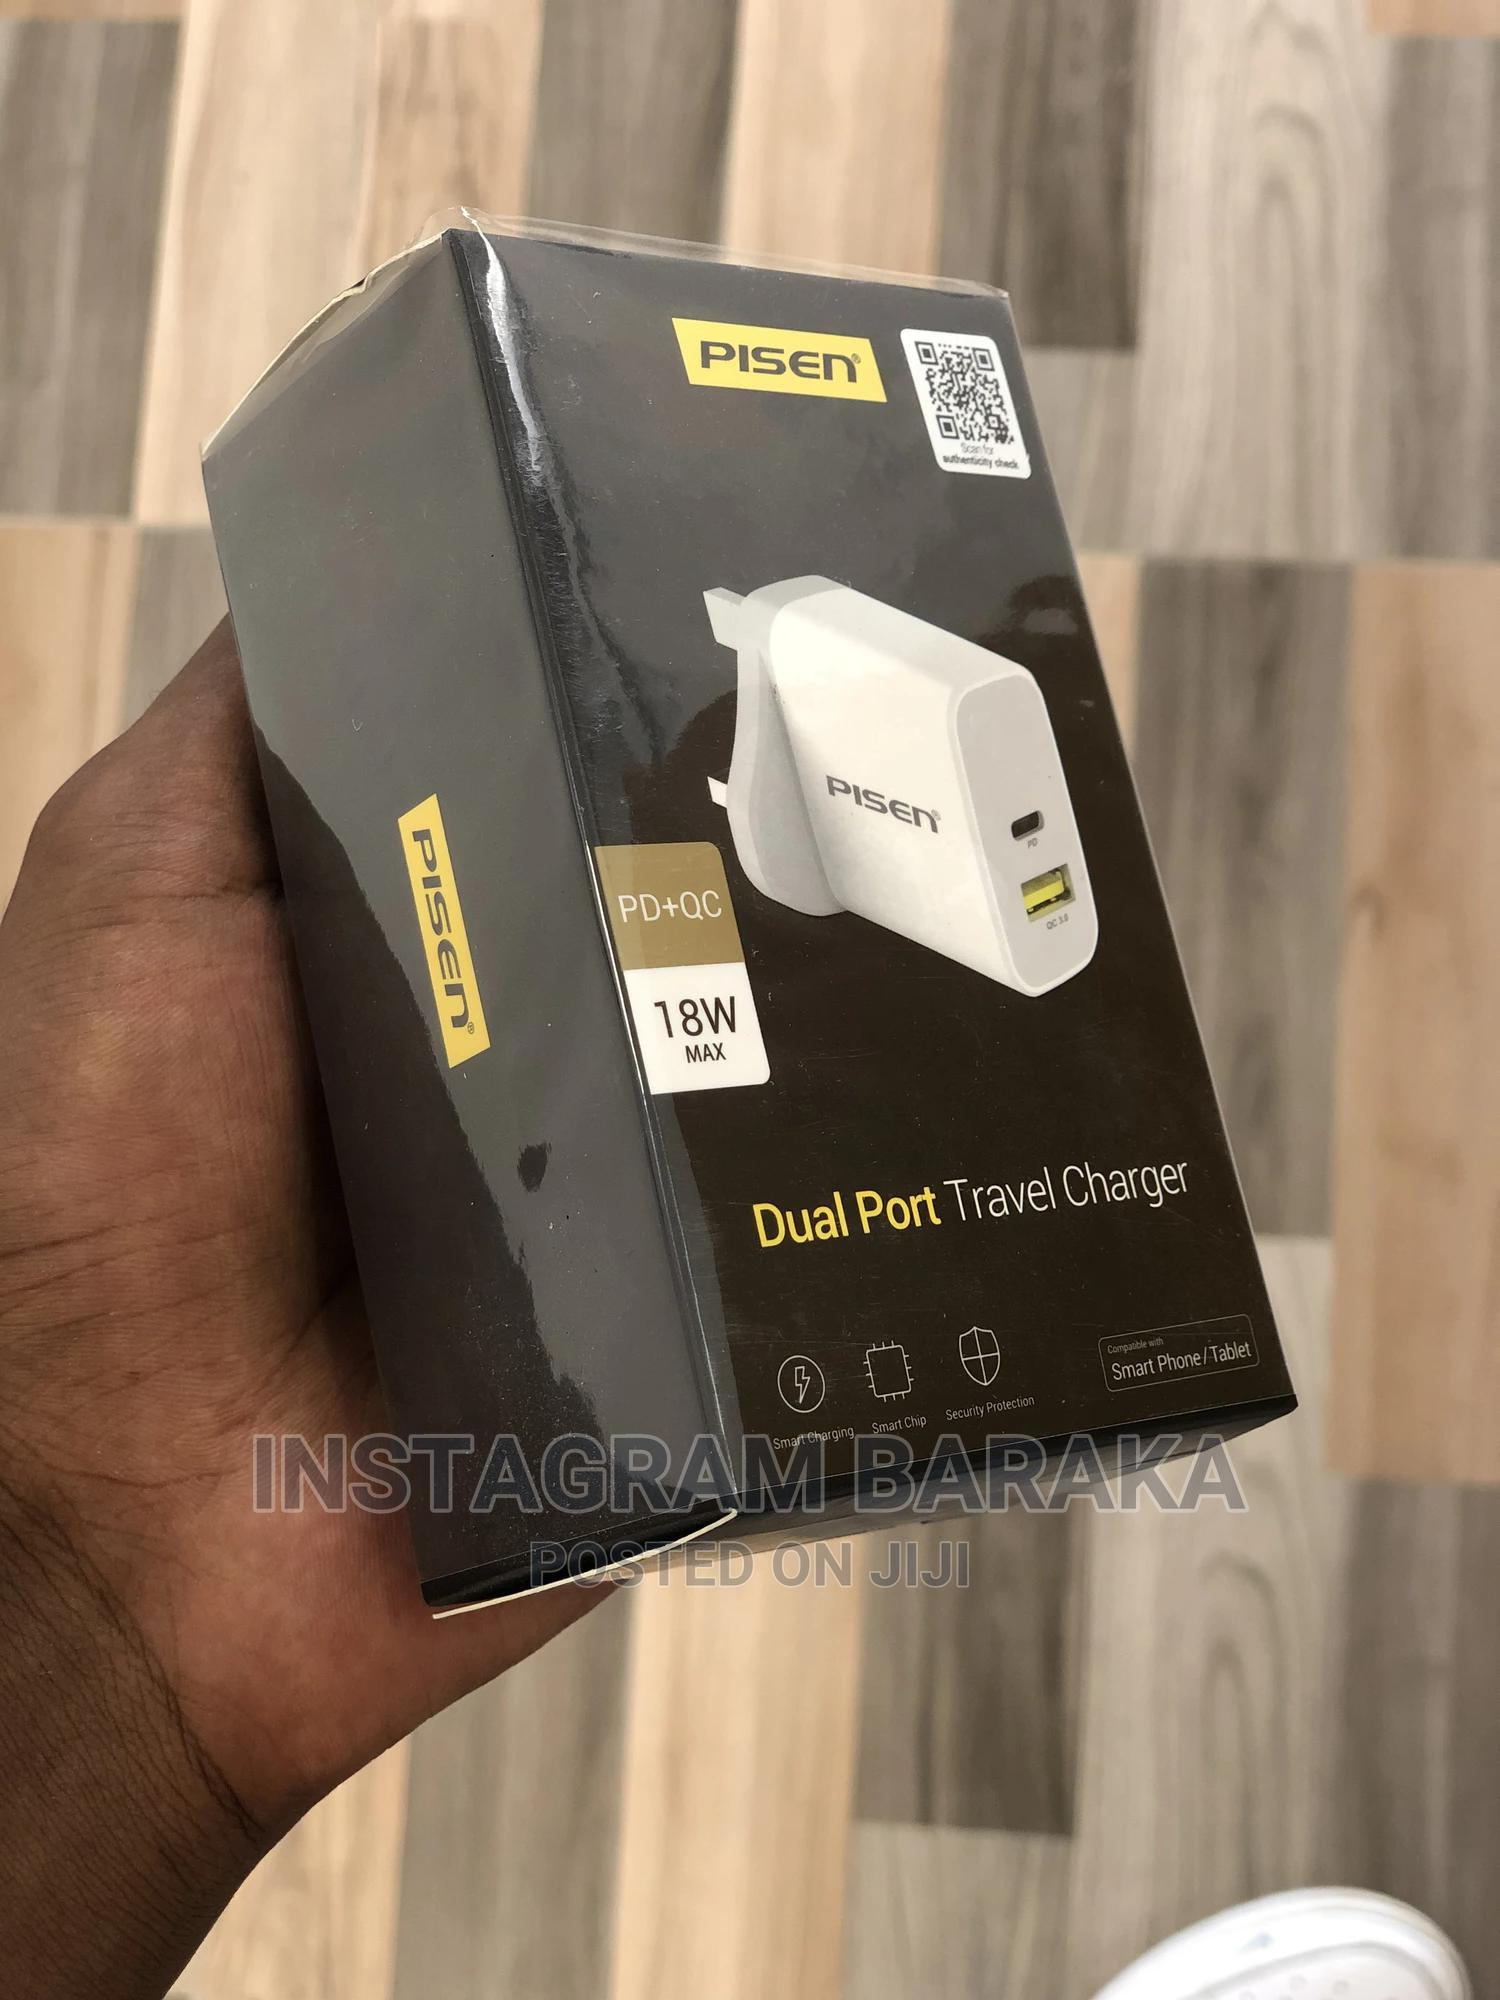 Pisen iPhone Charger   Accessories for Mobile Phones & Tablets for sale in Kinondoni, Dar es Salaam, Tanzania